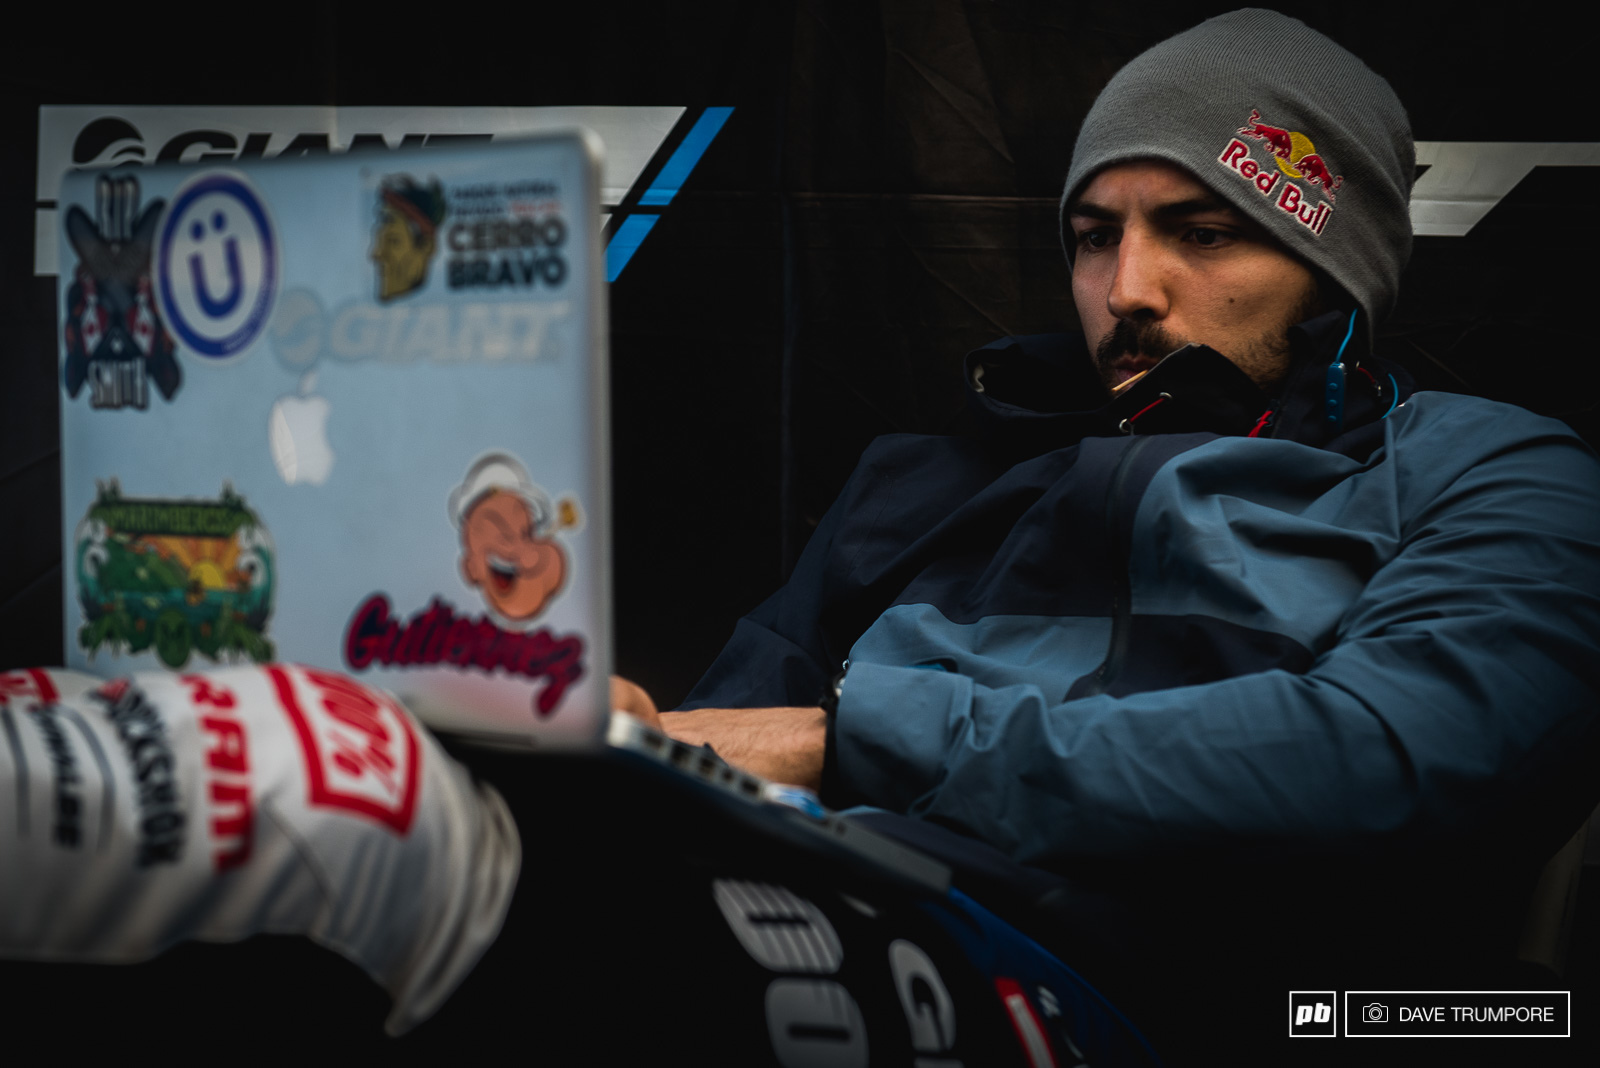 Marcelo Gutierrez started the day nice and relaxed and ended the day second in the overall World Cup standings just two points behind Greg MInnaar.